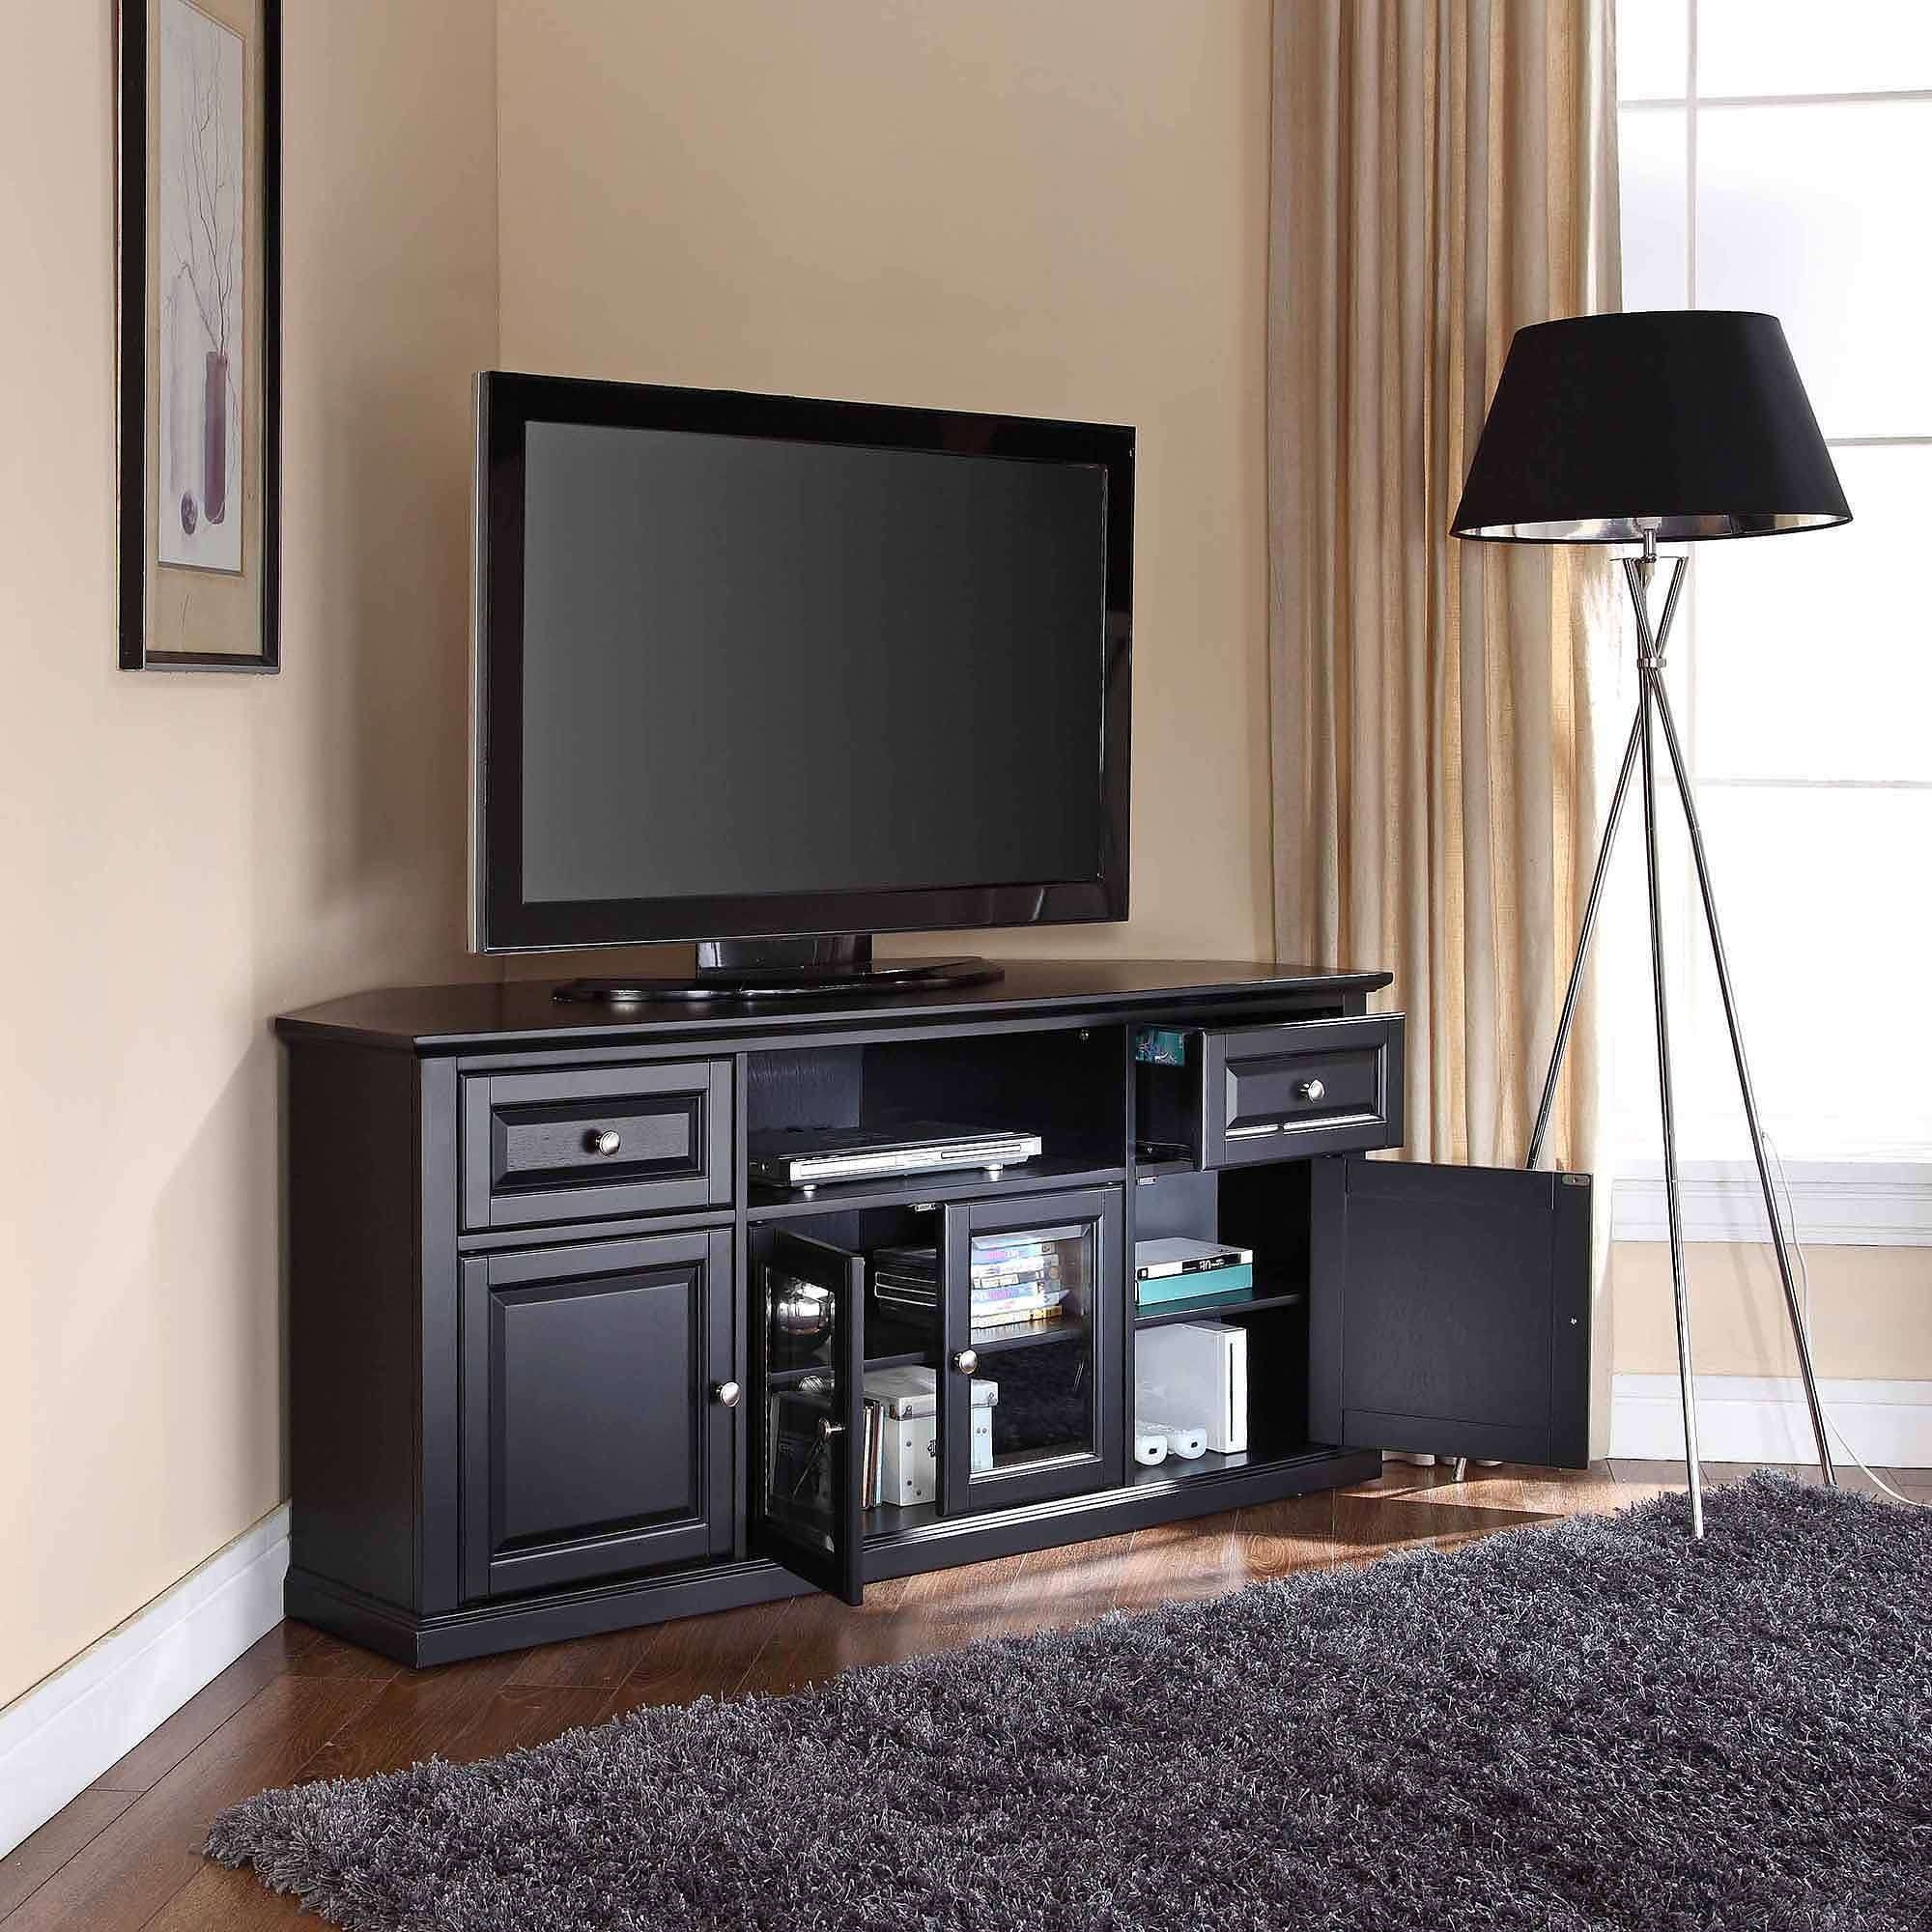 "Crosley Furniture Corner Tv Stand For Tvs Up To 60"" – Walmart In Low Corner Tv Stands (View 5 of 15)"